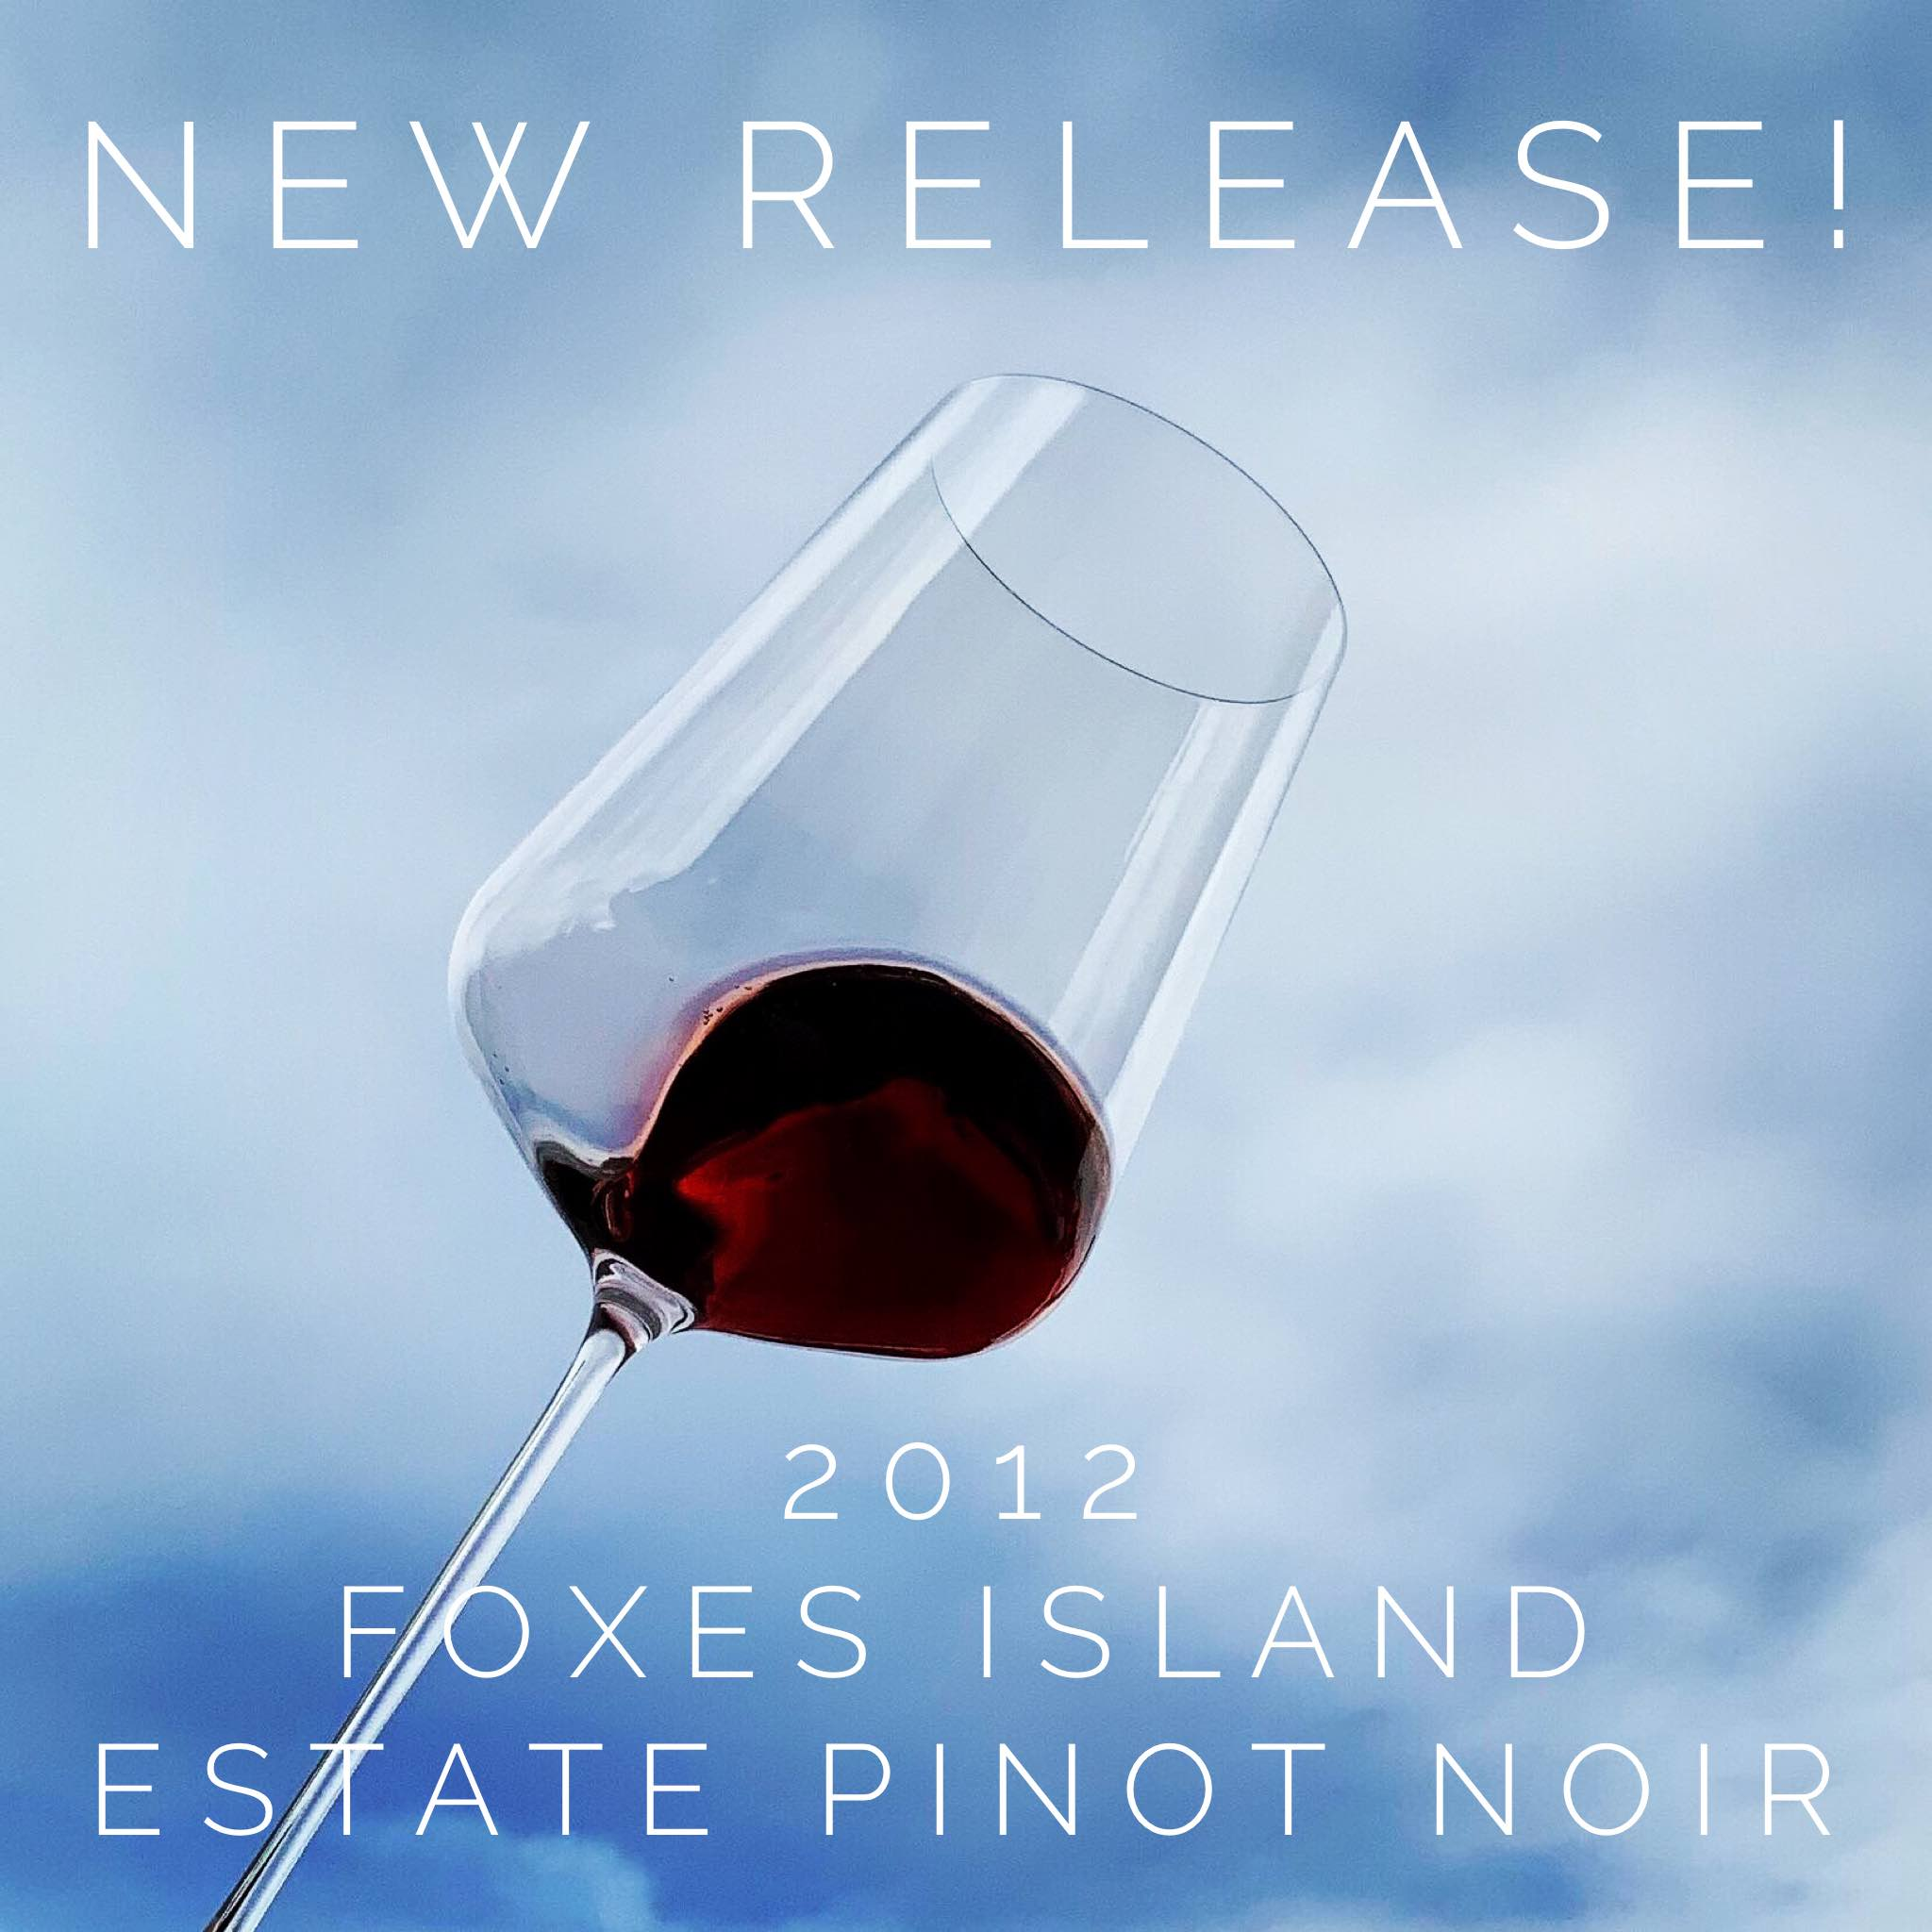 Foxes Island Estate Pinot Noir in Zalto